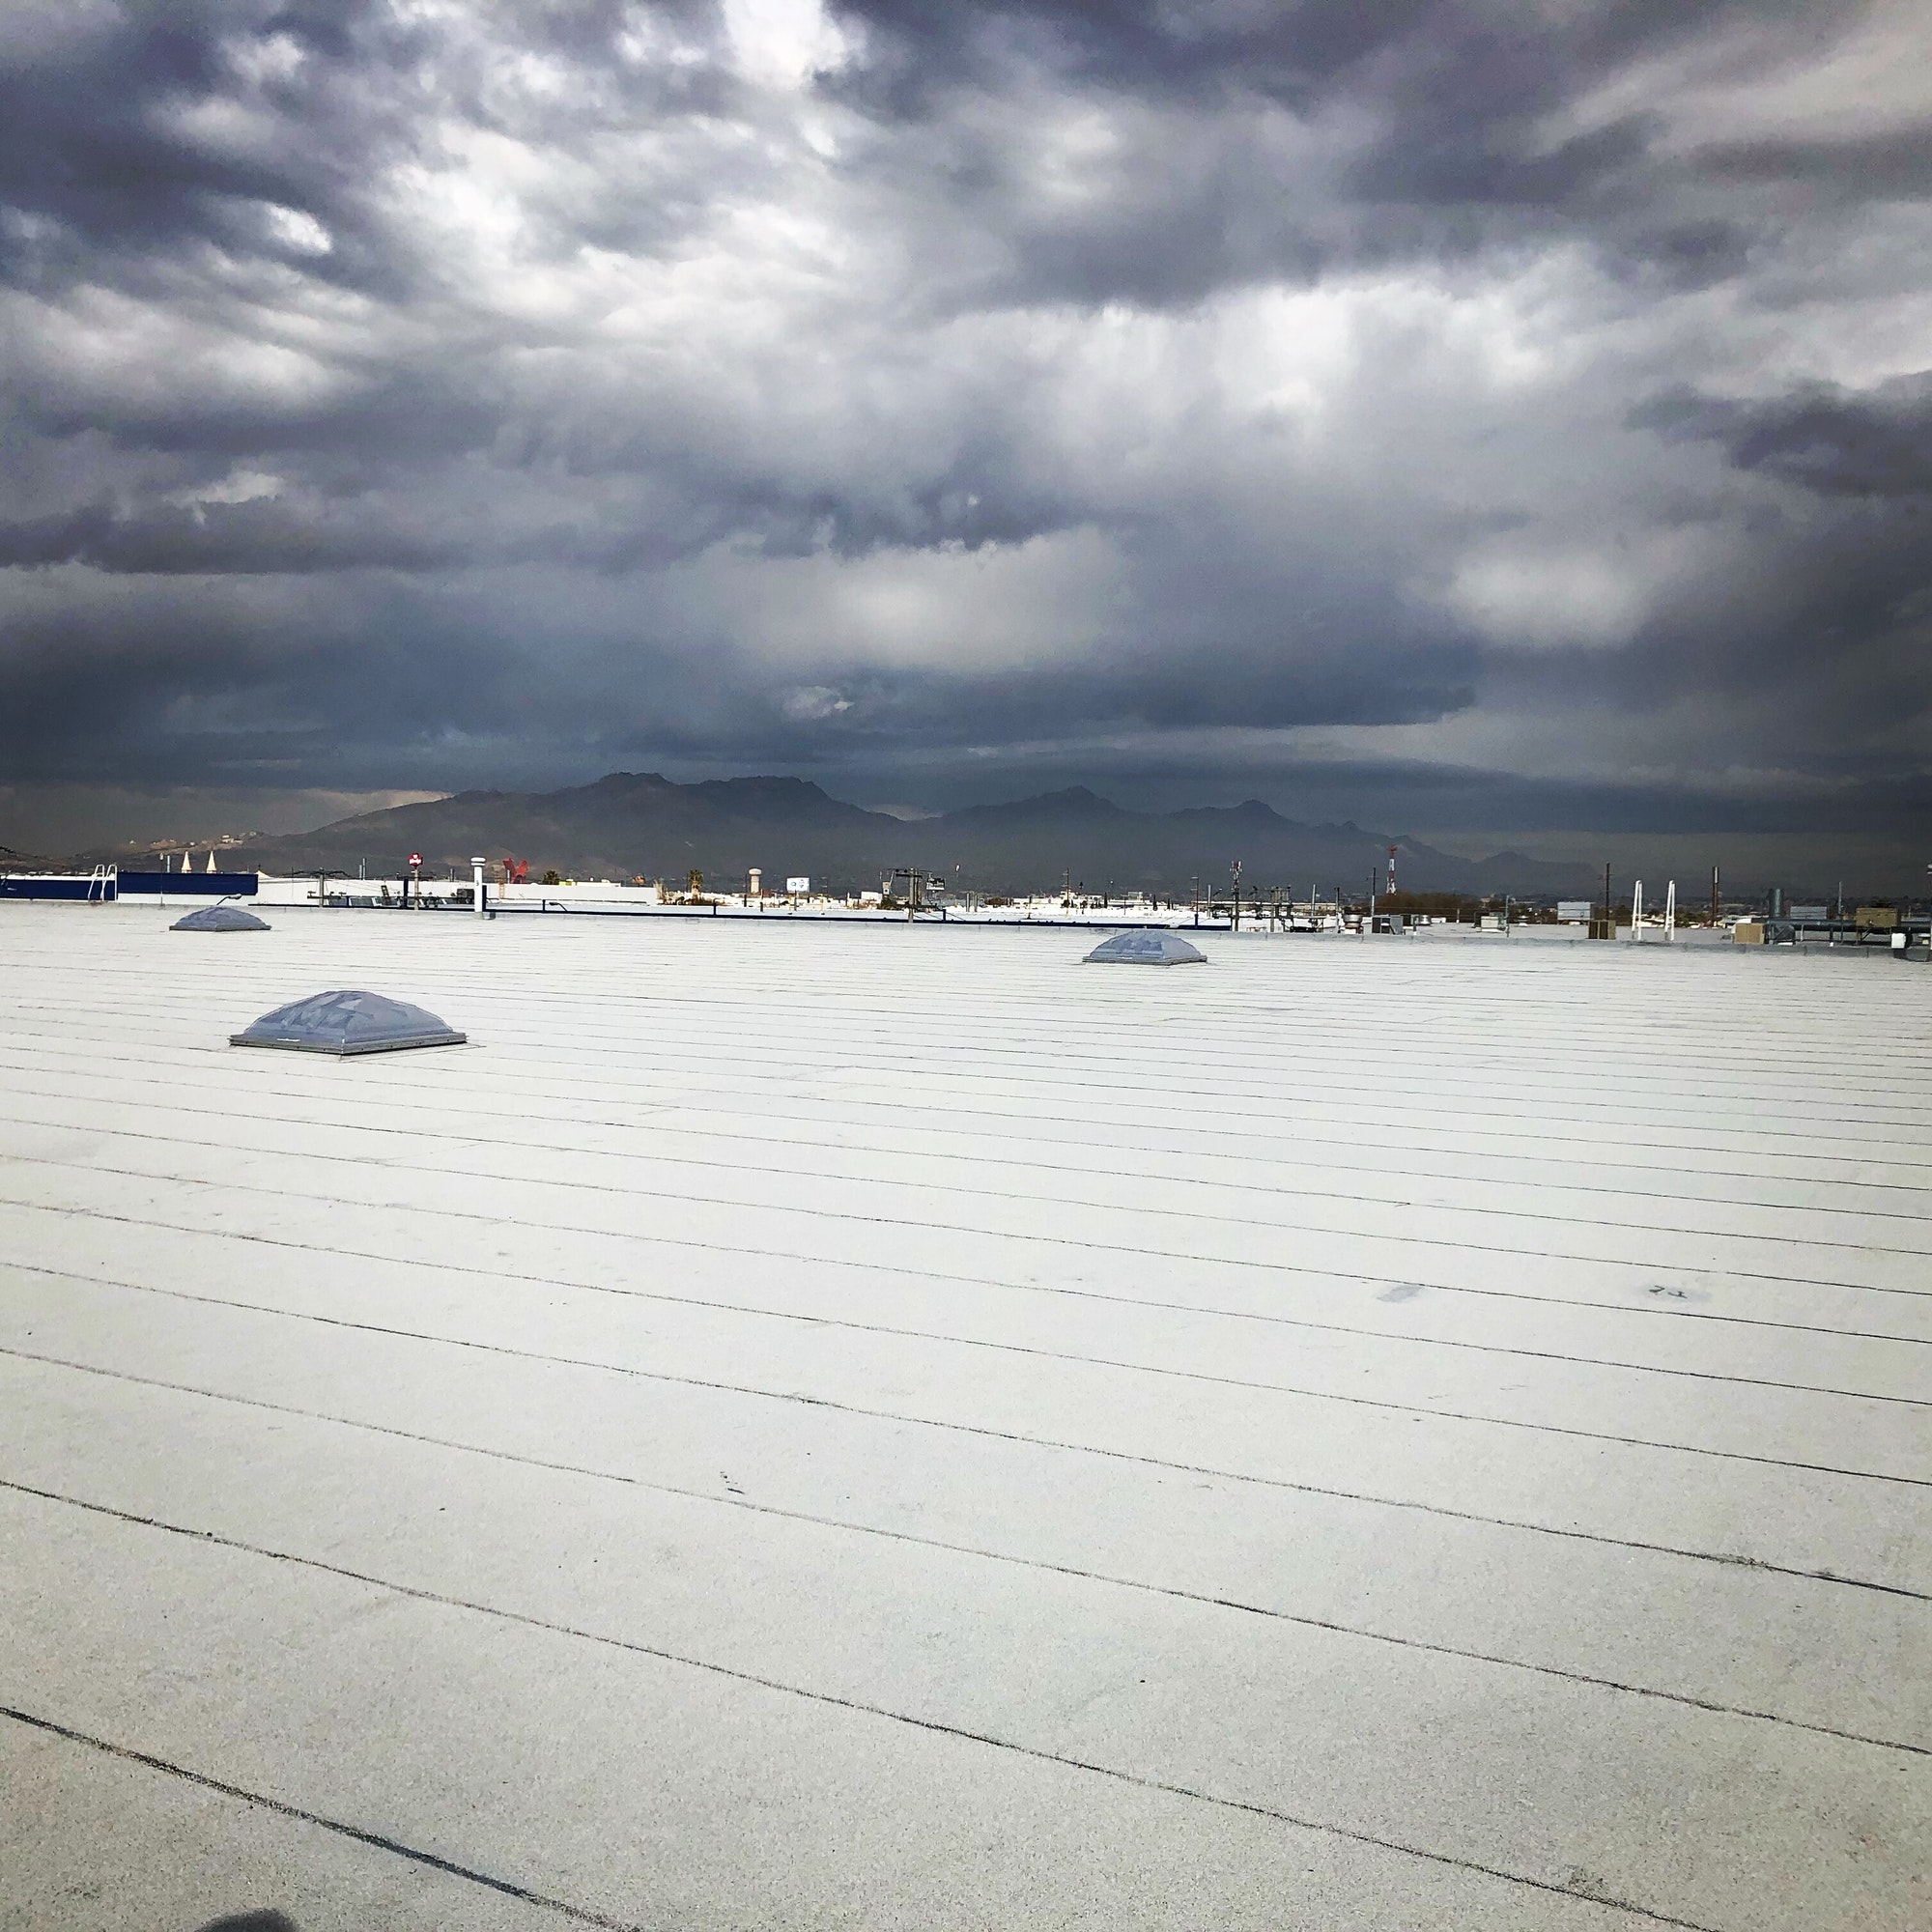 Cloudy over the roof